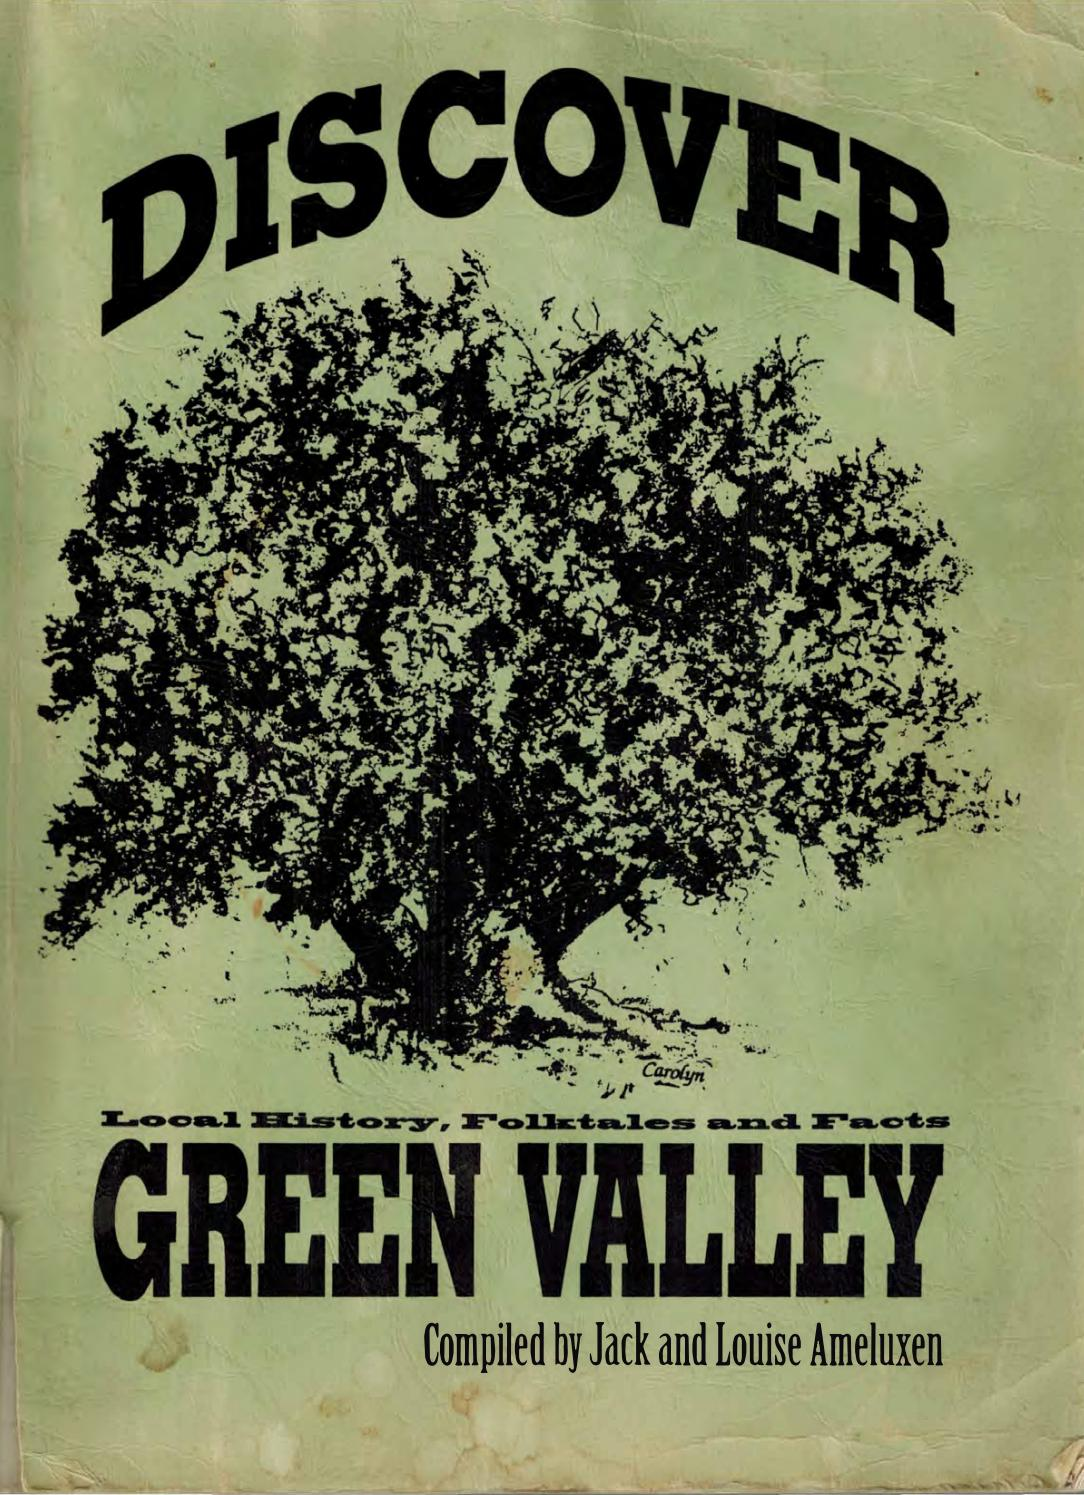 Discover Green Valley by saraesc - issuu